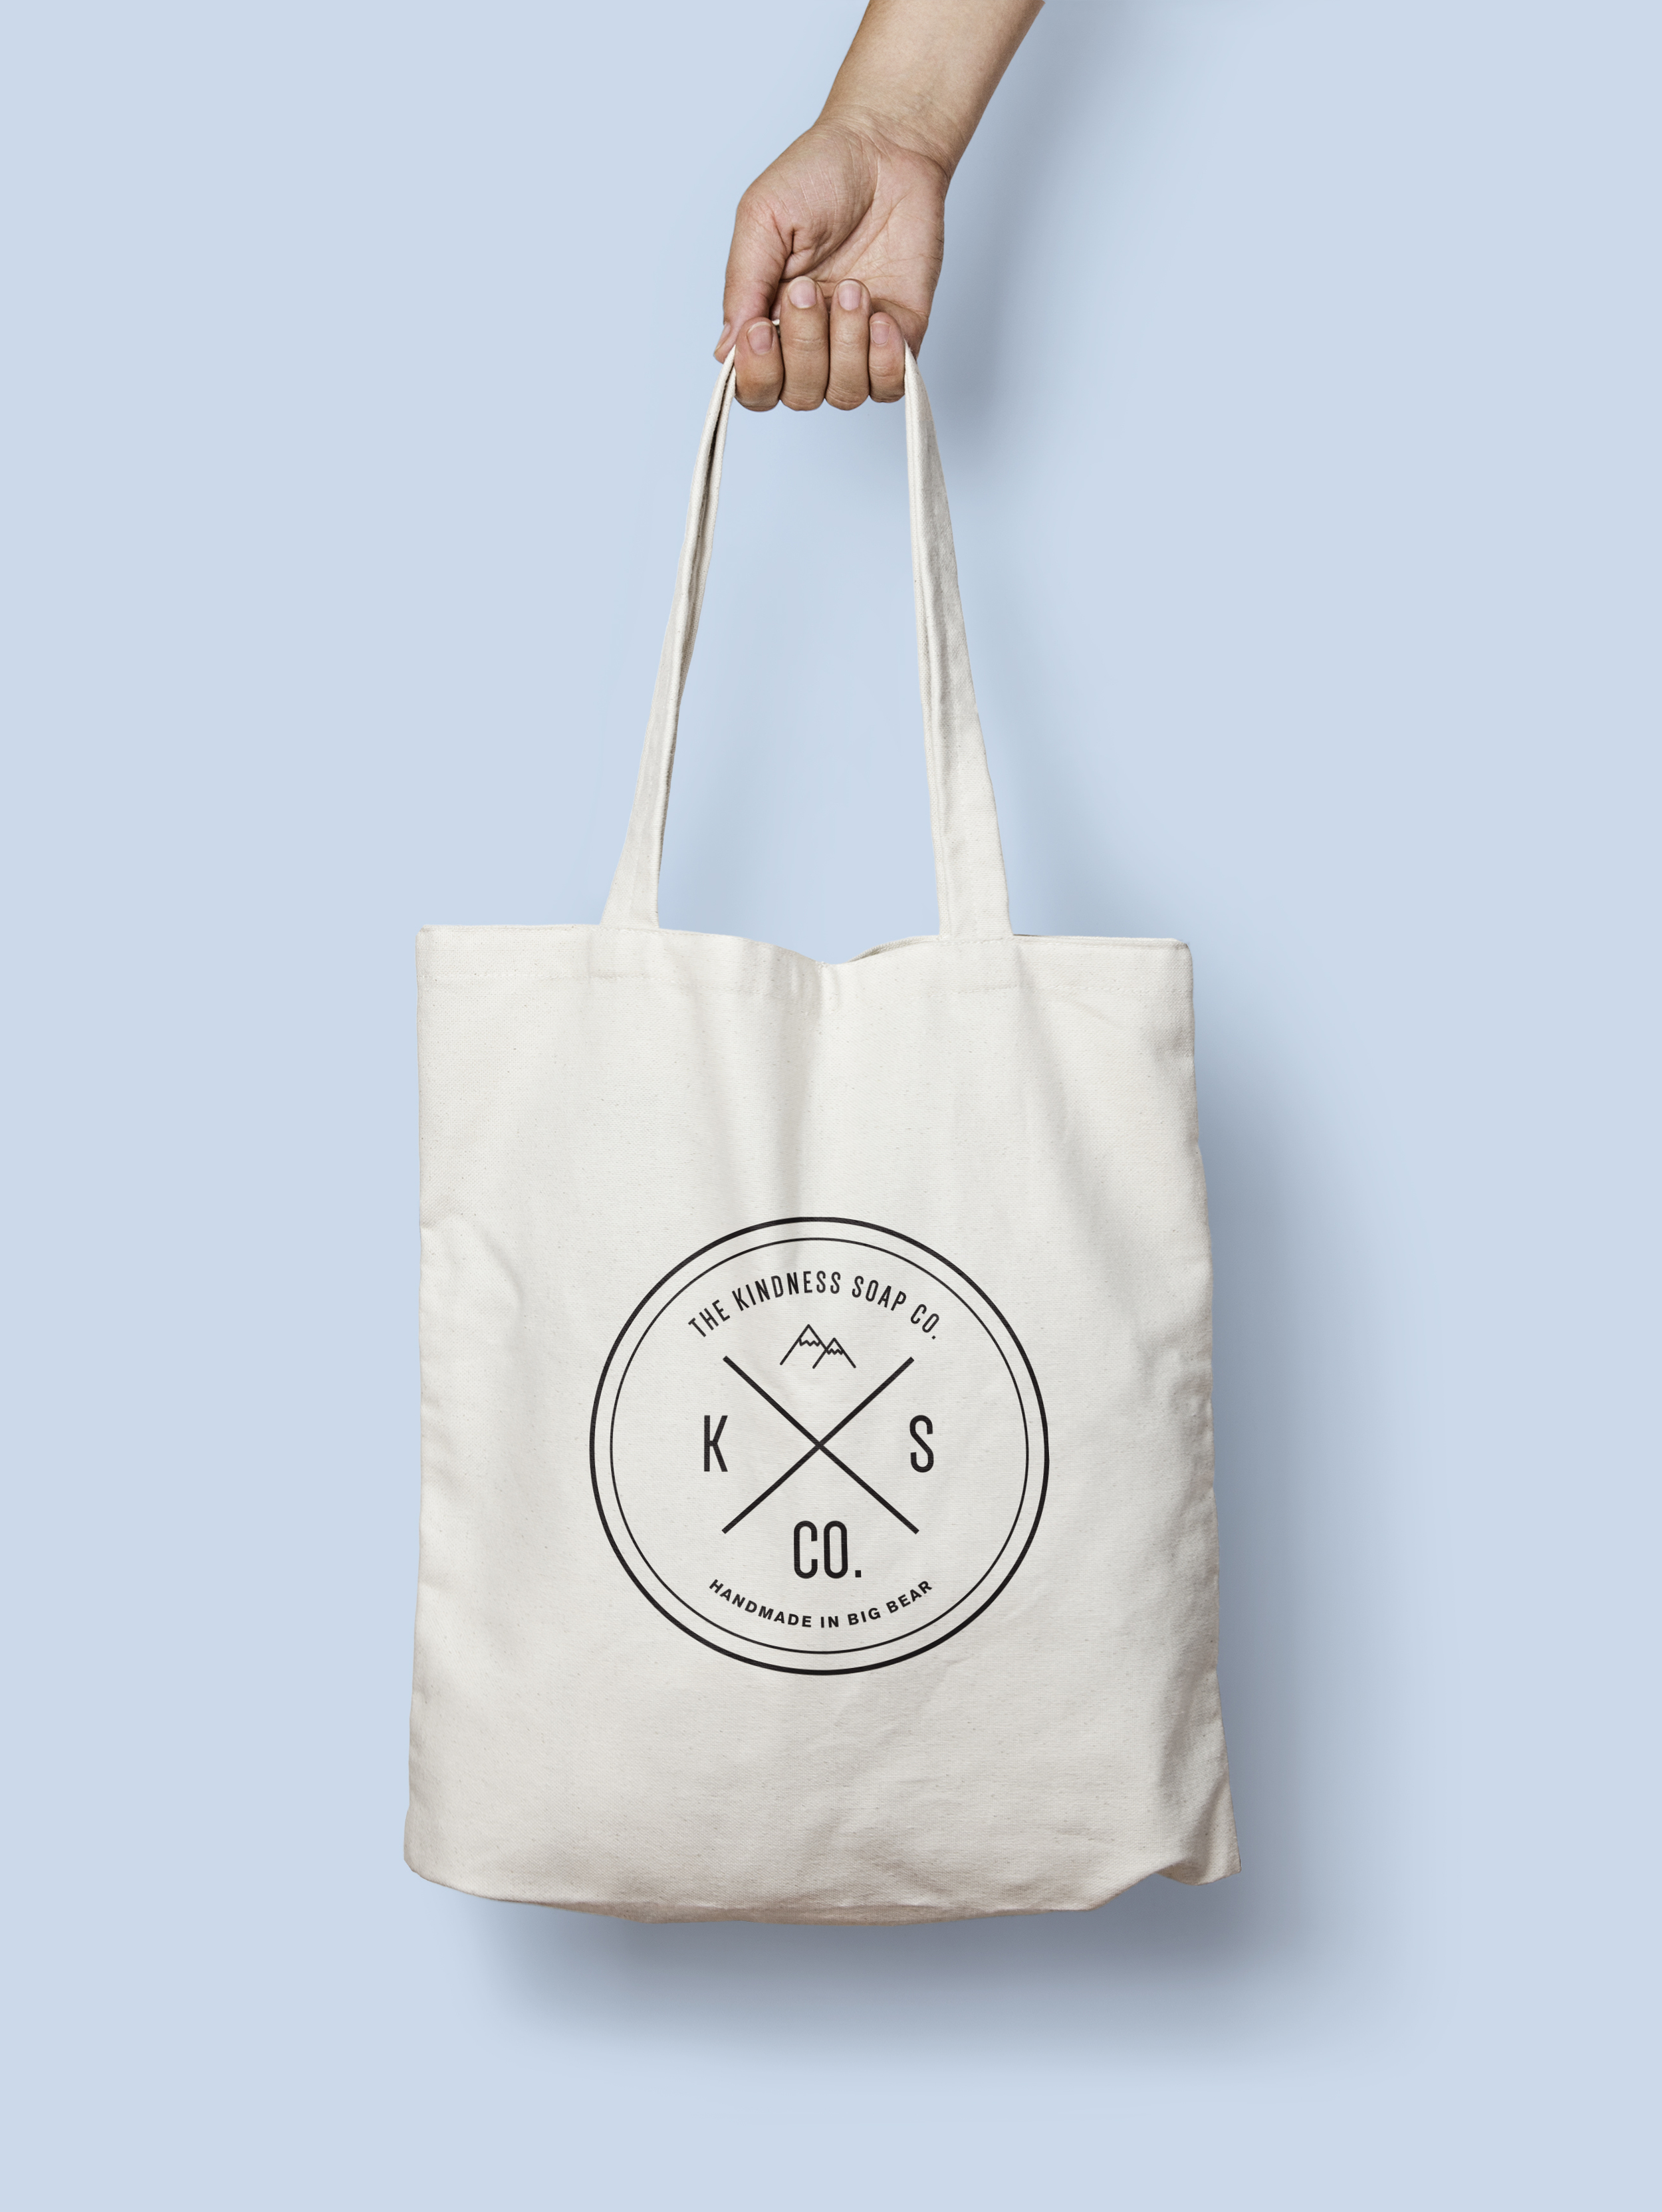 the_kindness_soap_co_tote_branding_by_inbetween_studio